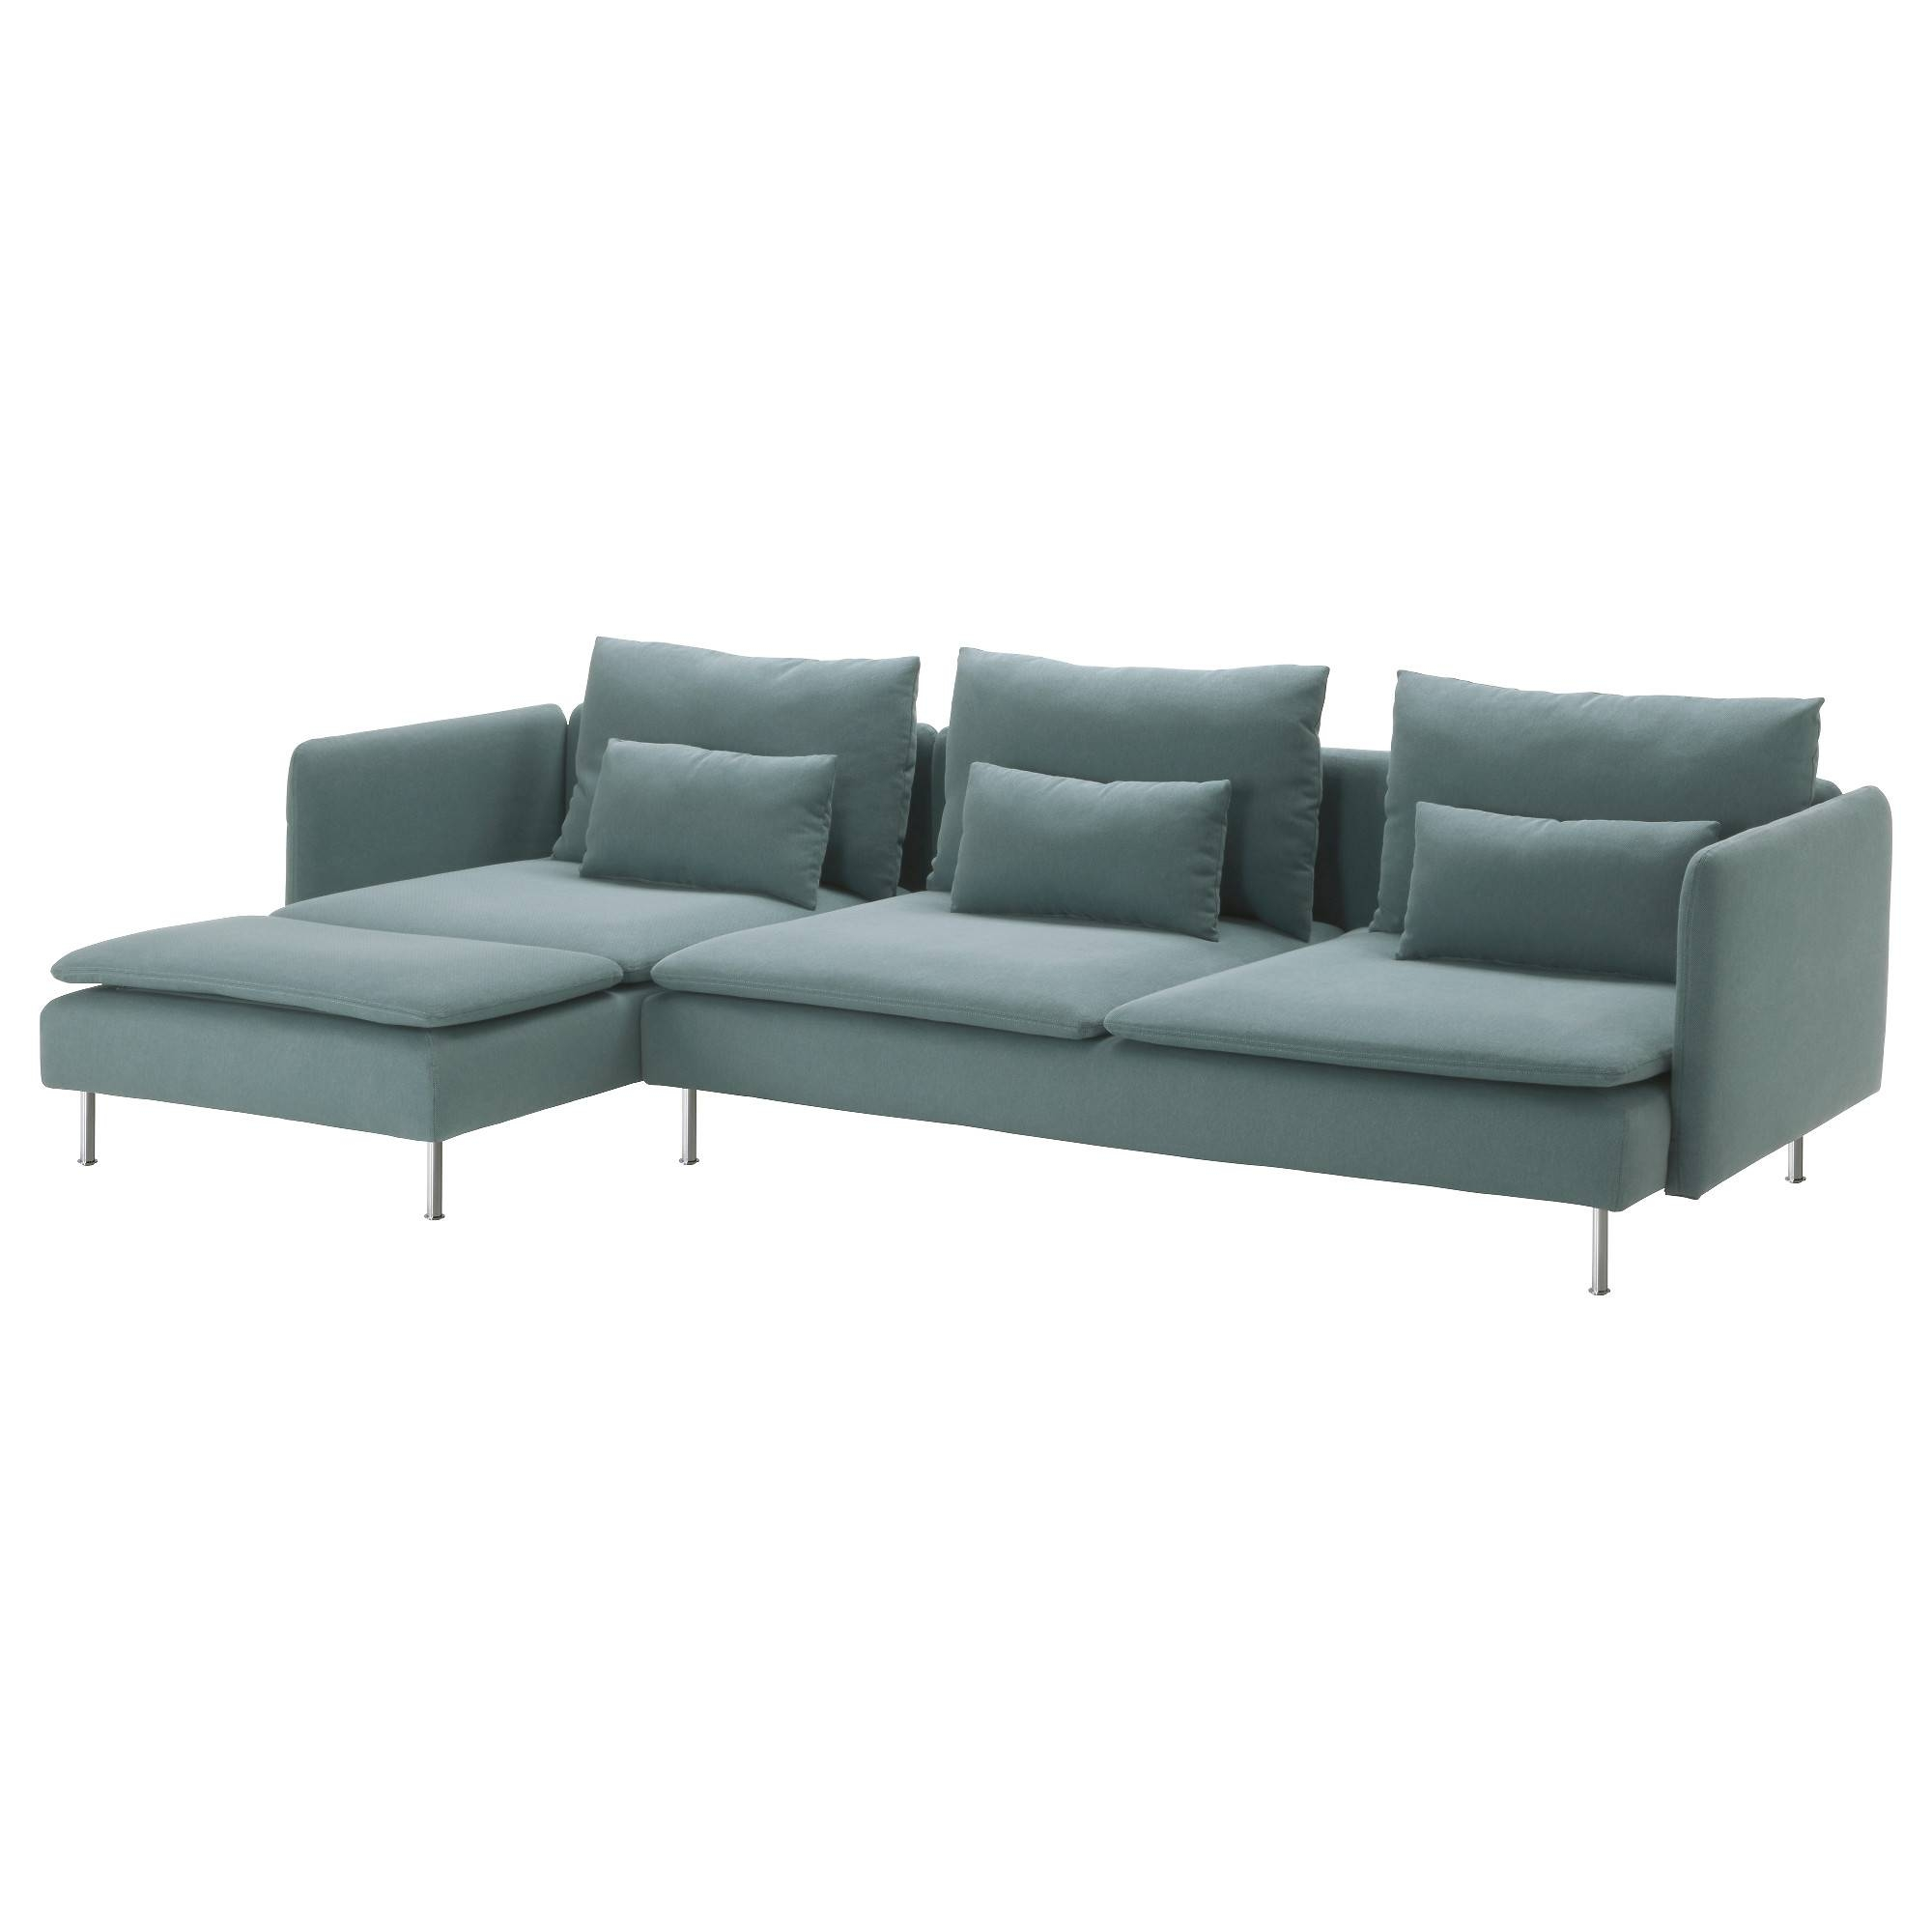 Sectional Sofas & Couches - Ikea within Sleeper Sectional Sofa Ikea (Image 14 of 25)